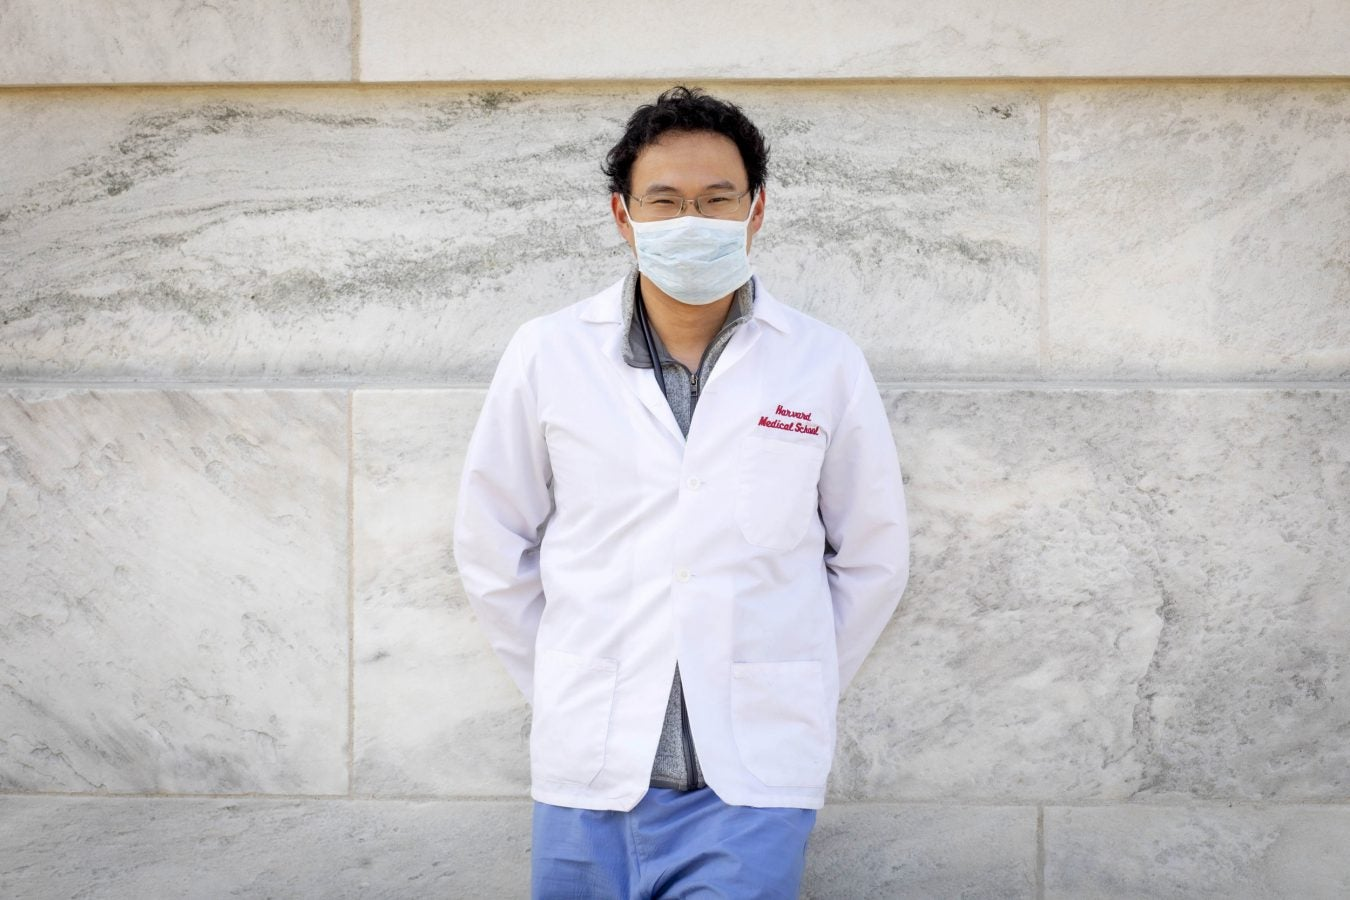 Harvard University Medical School student Fang Cao is pictured.